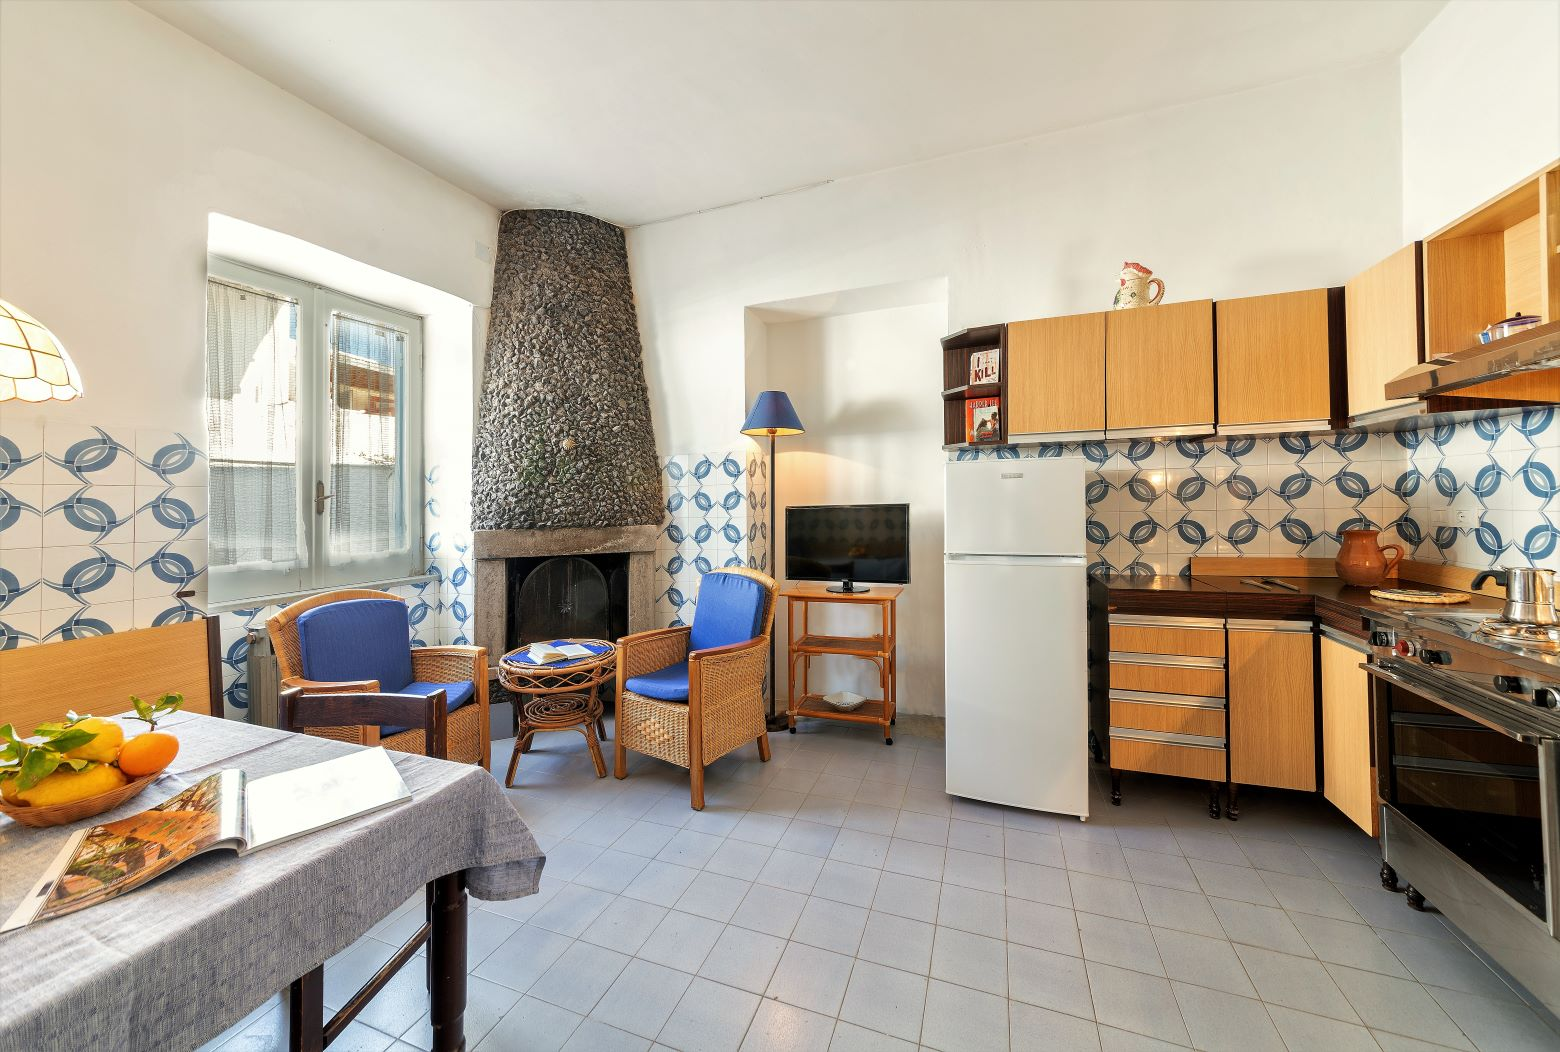 Ischia Room Apartment BB Self catering